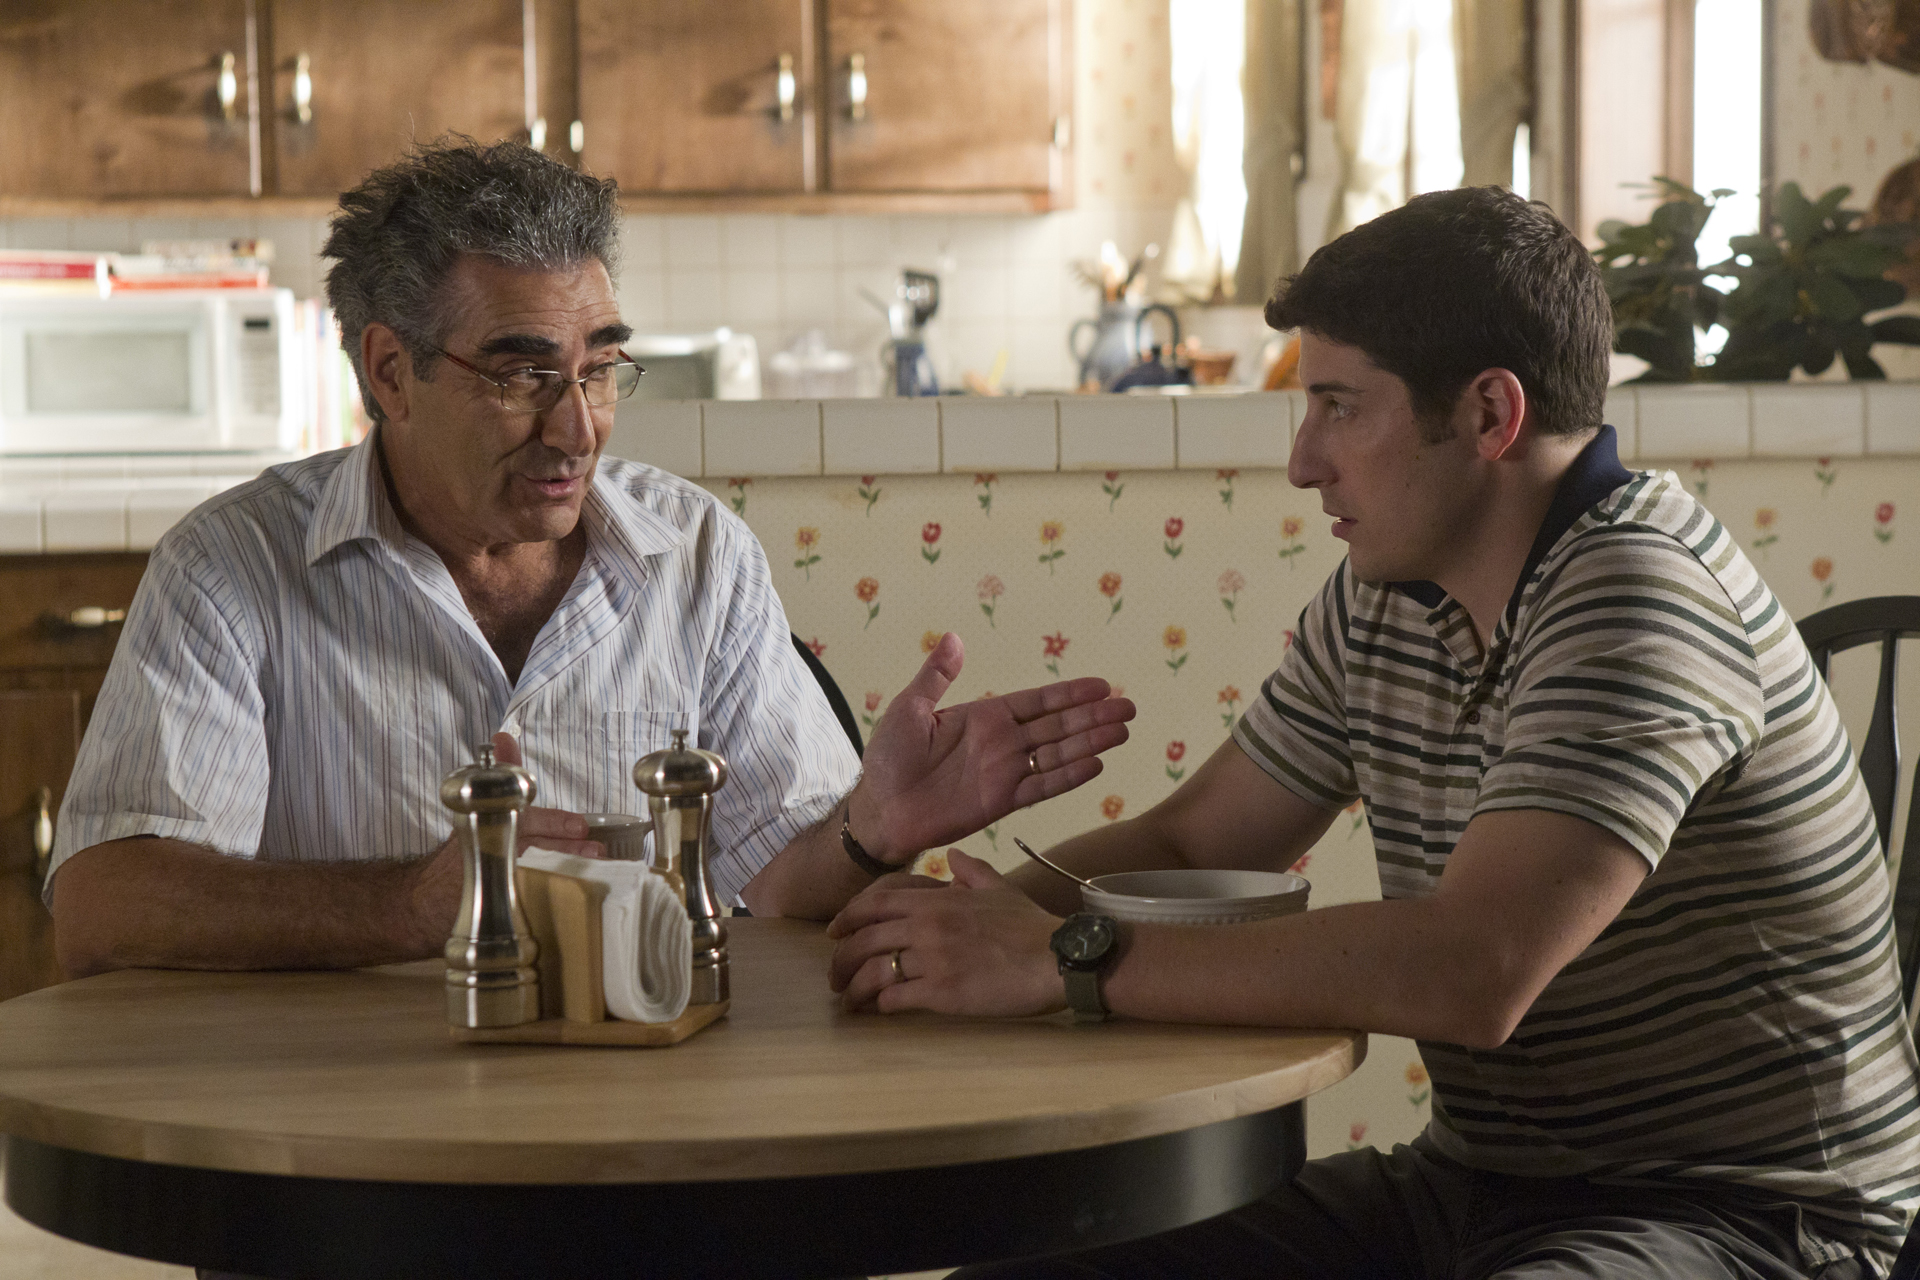 http://collider.com/wp-content/uploads/american-reunion-movie-image-eugene-levy-jason-biggs-01.jpg